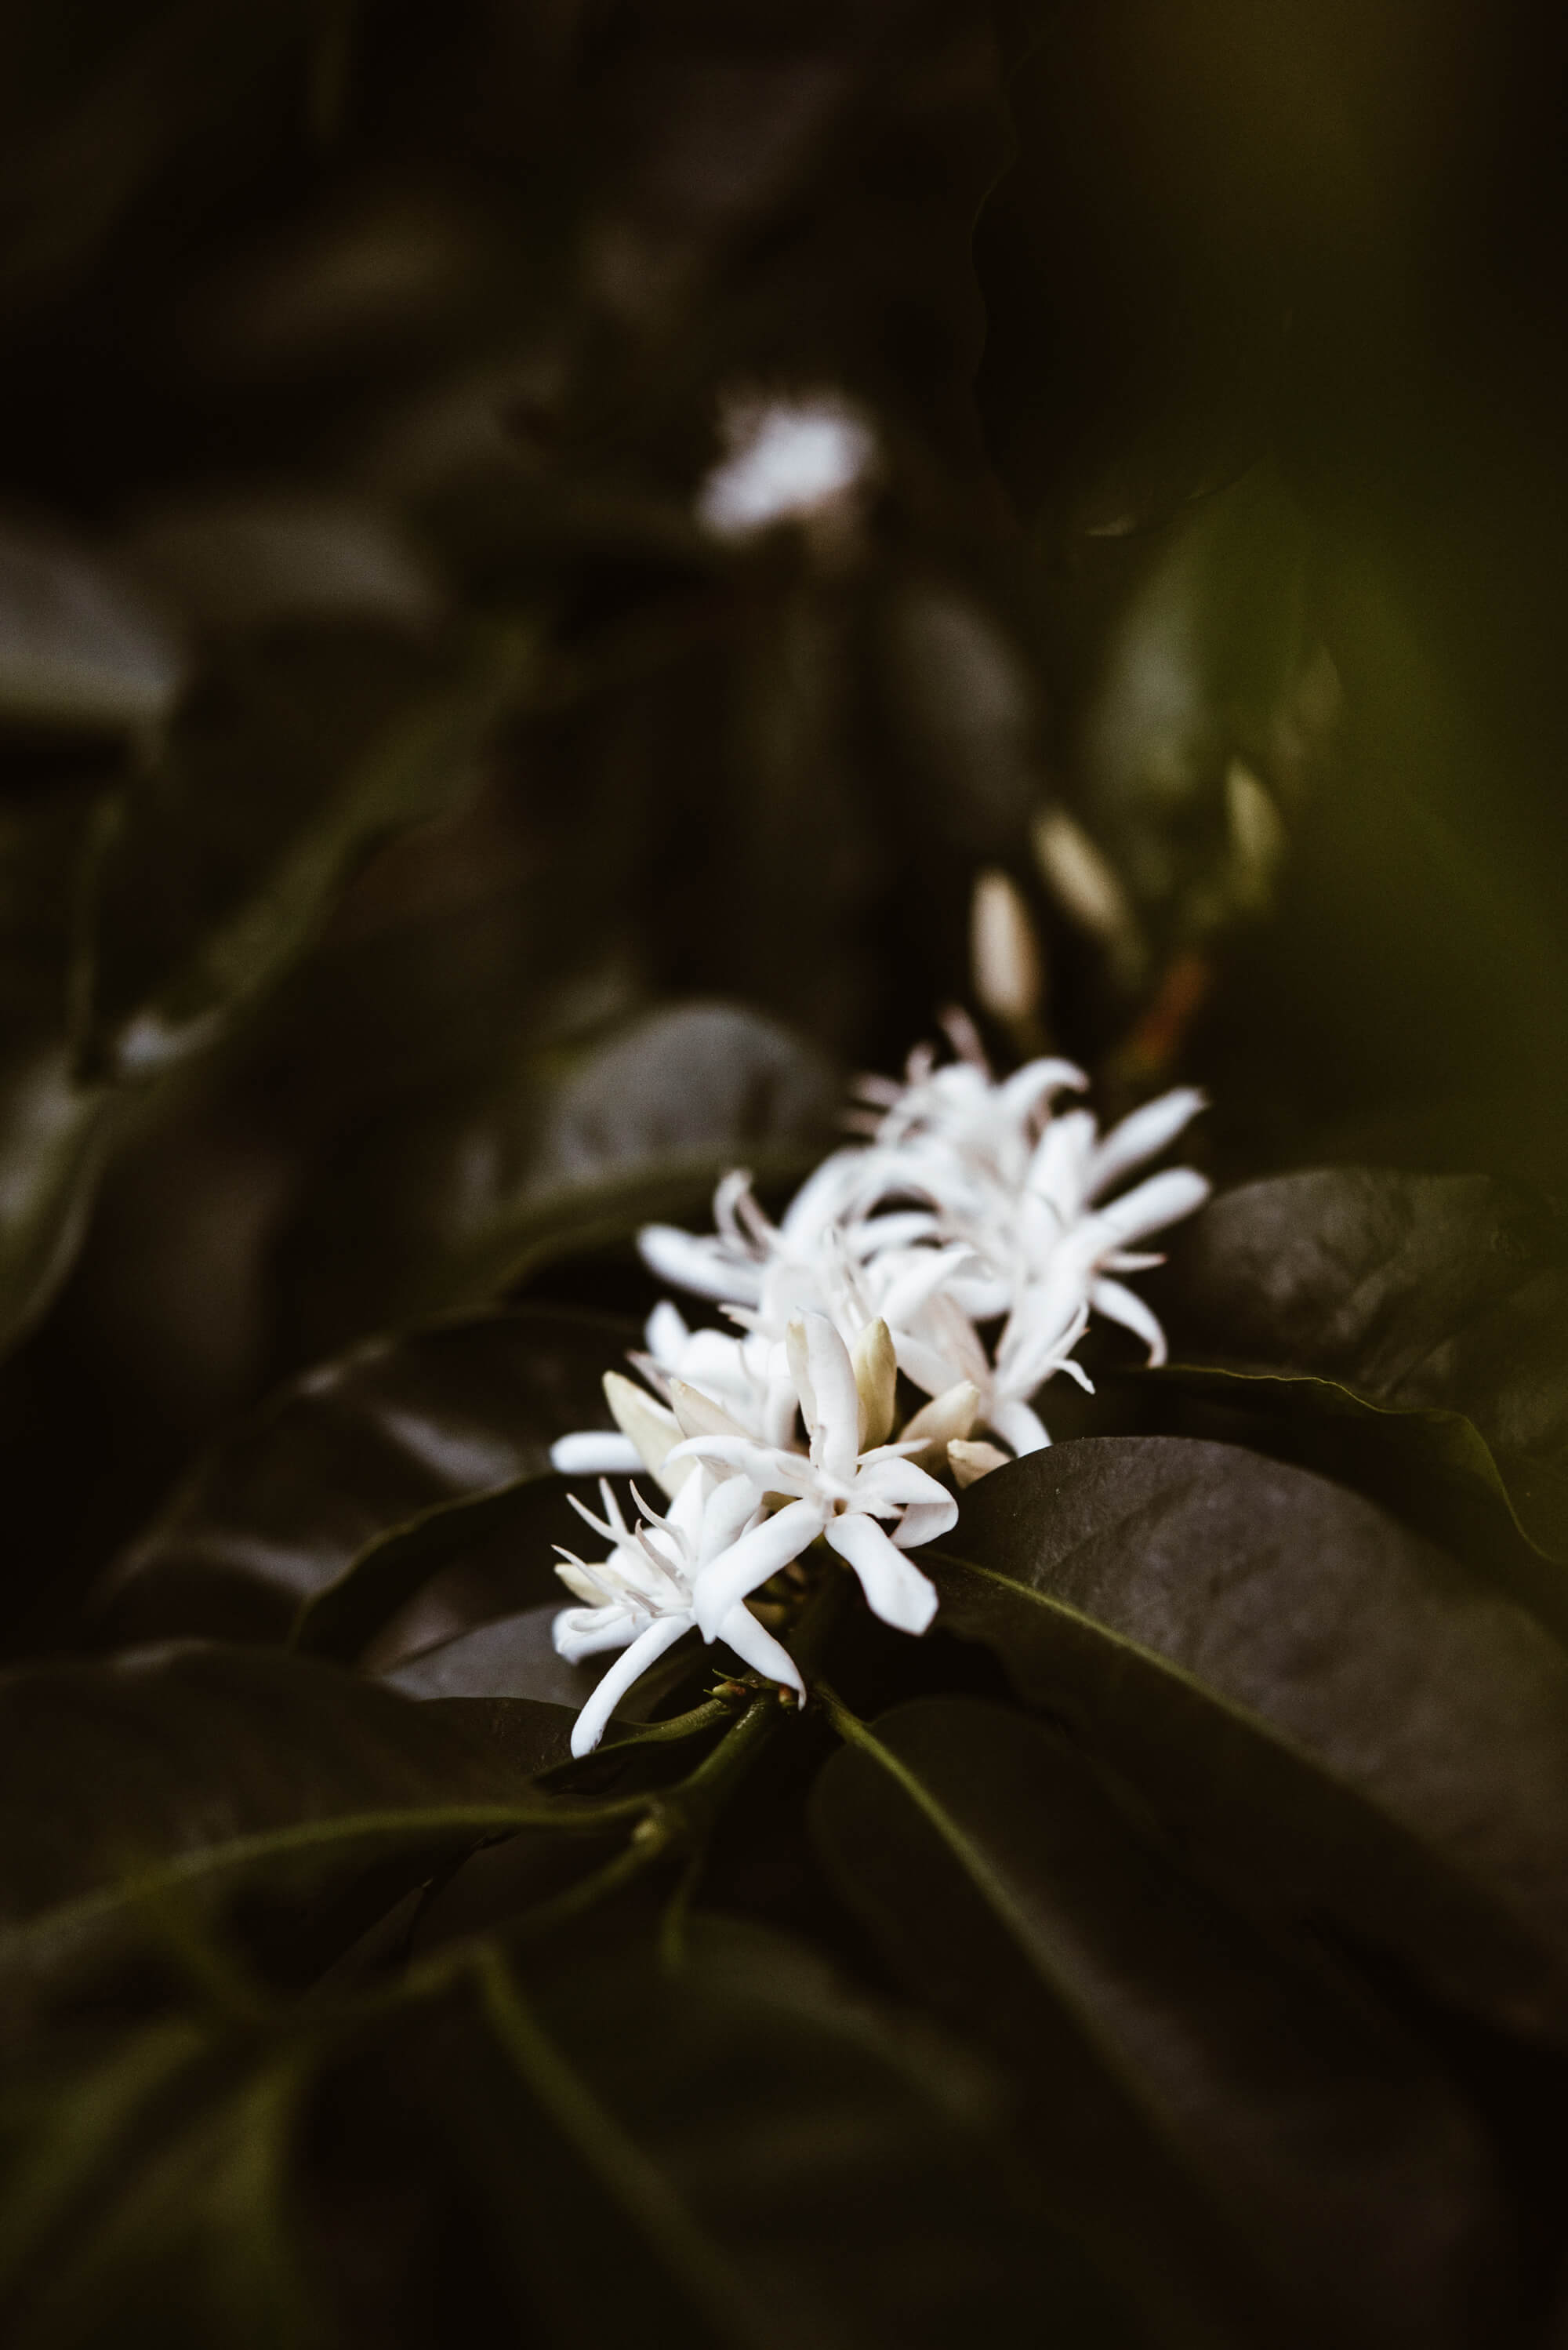 Coffee plant with white flowers.